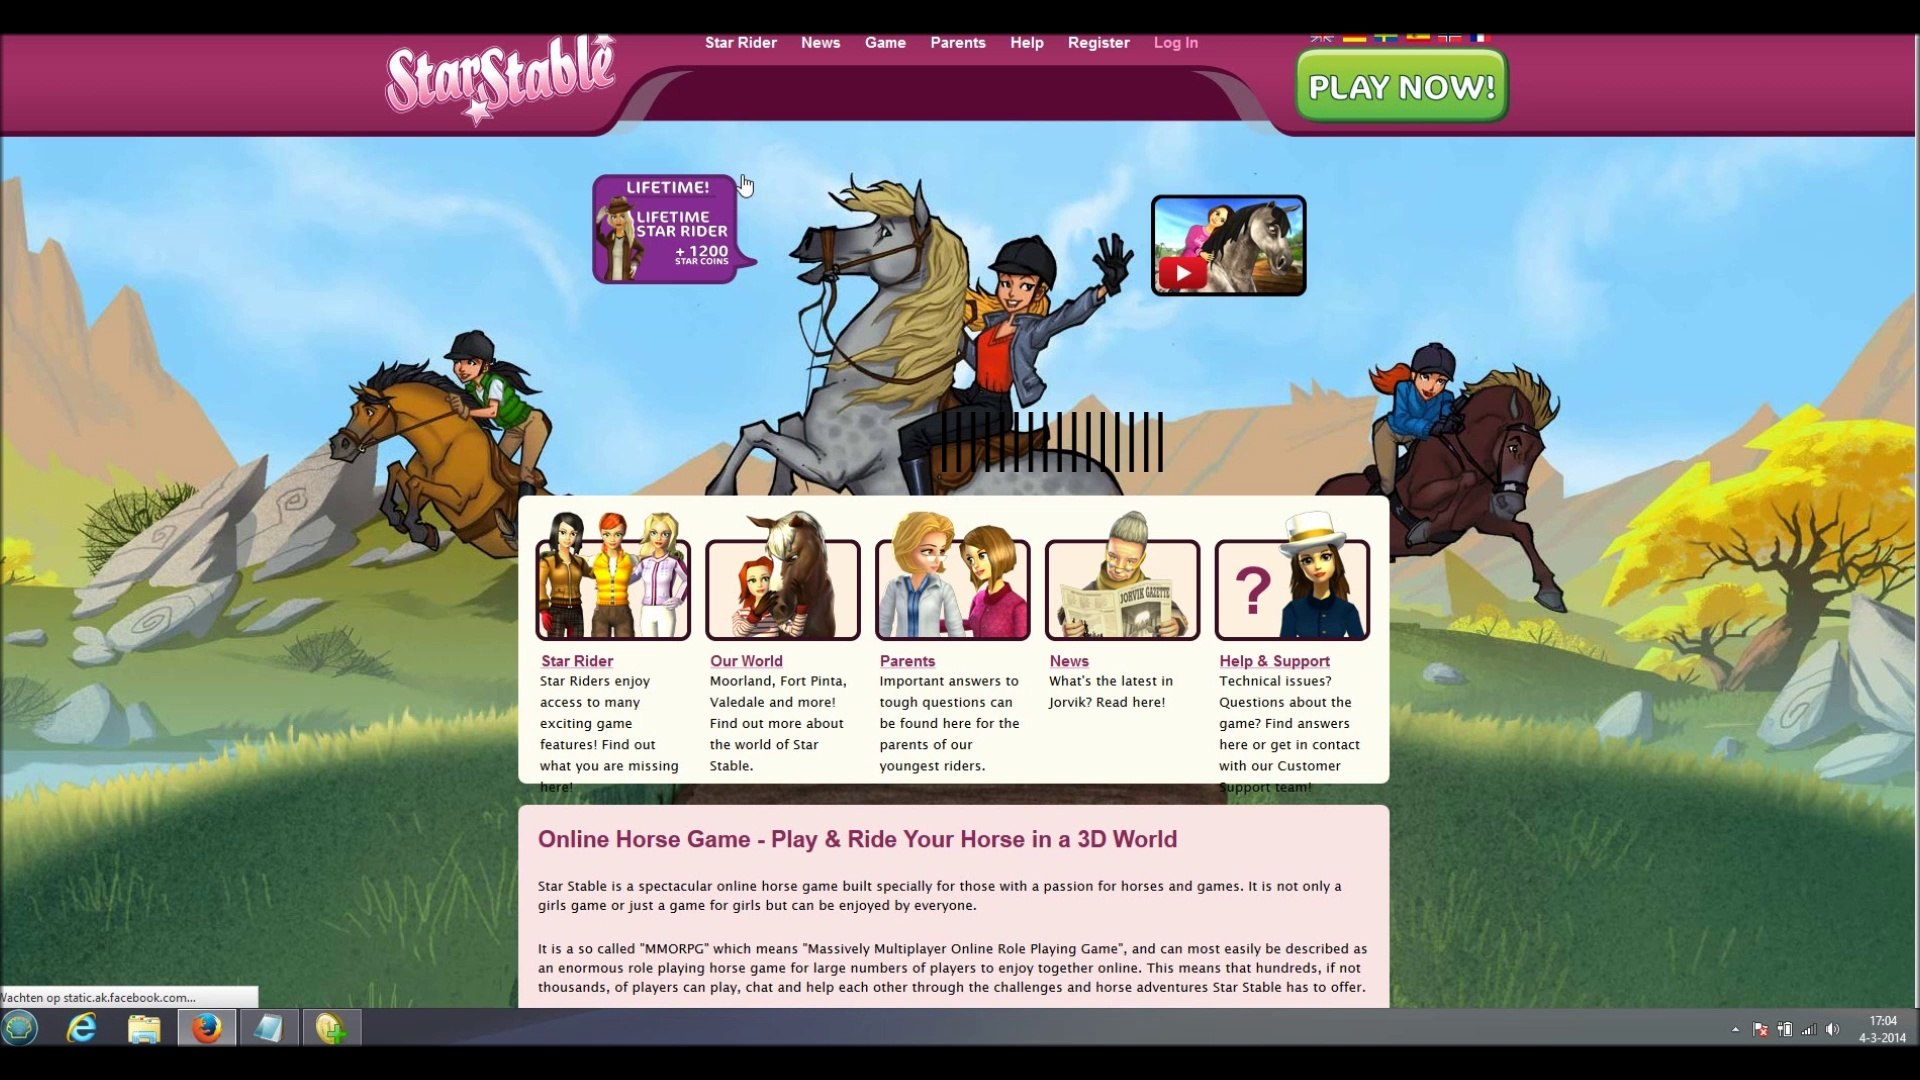 How to get free star rider membership for star stable online